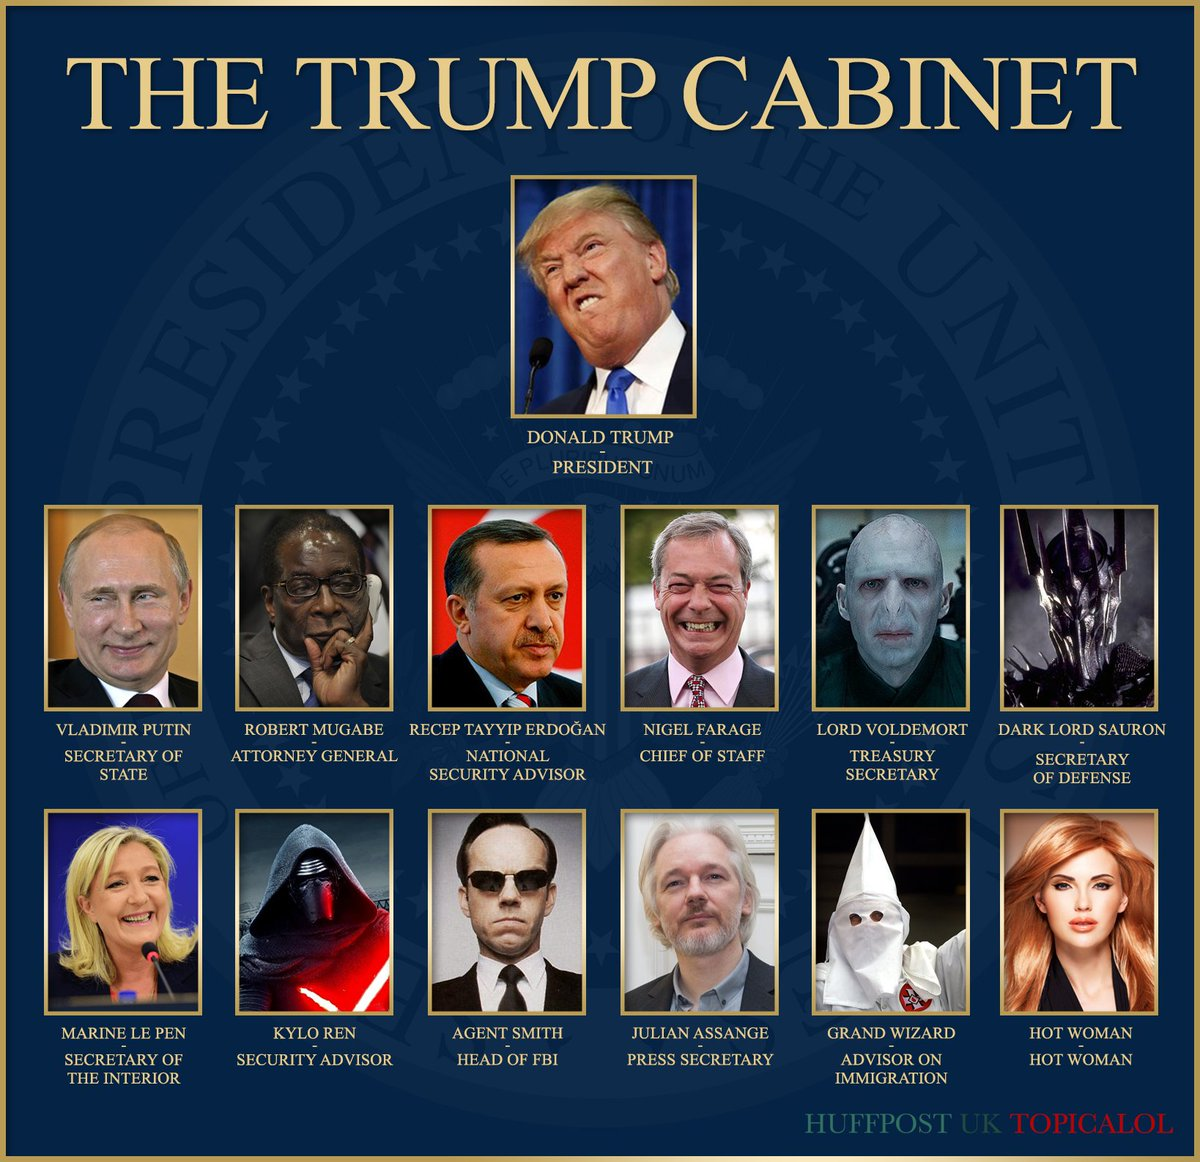 EXCLUSIVE: #TrumpPresident Reveals His New Cabinet https://t.co/txpbCPPZXt https://t.co/1WLpGiCf6l